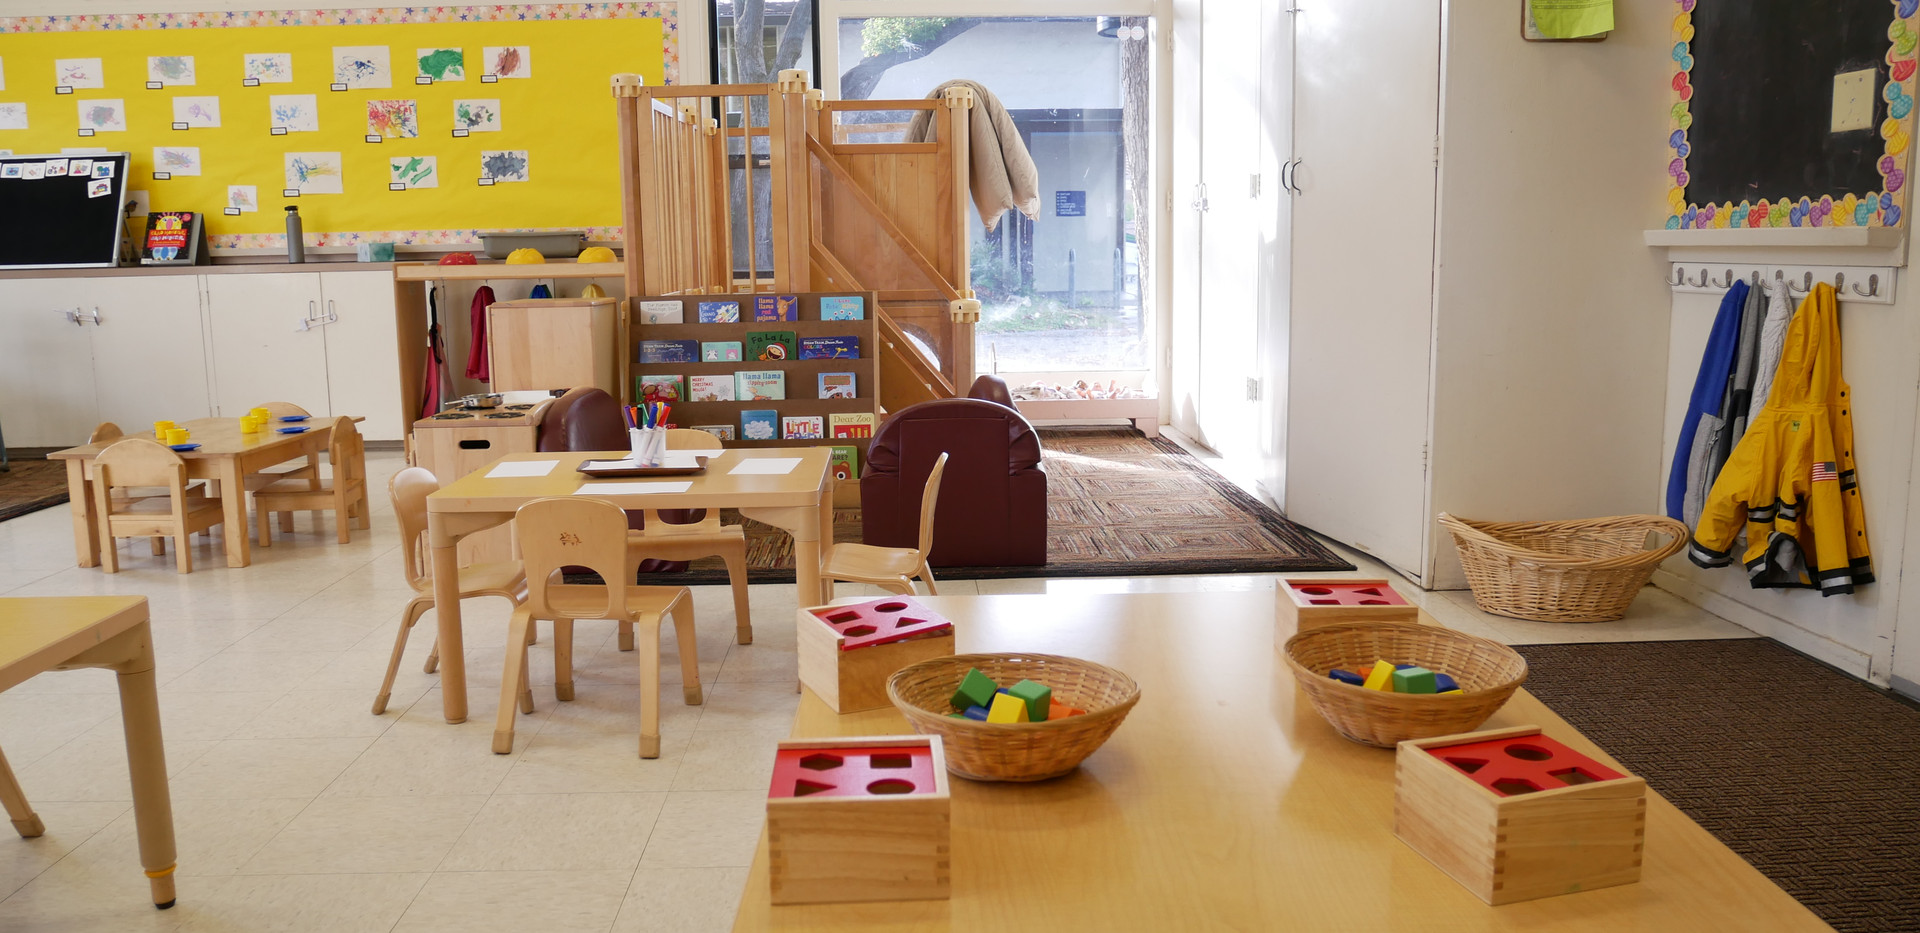 Manipulative Play Table